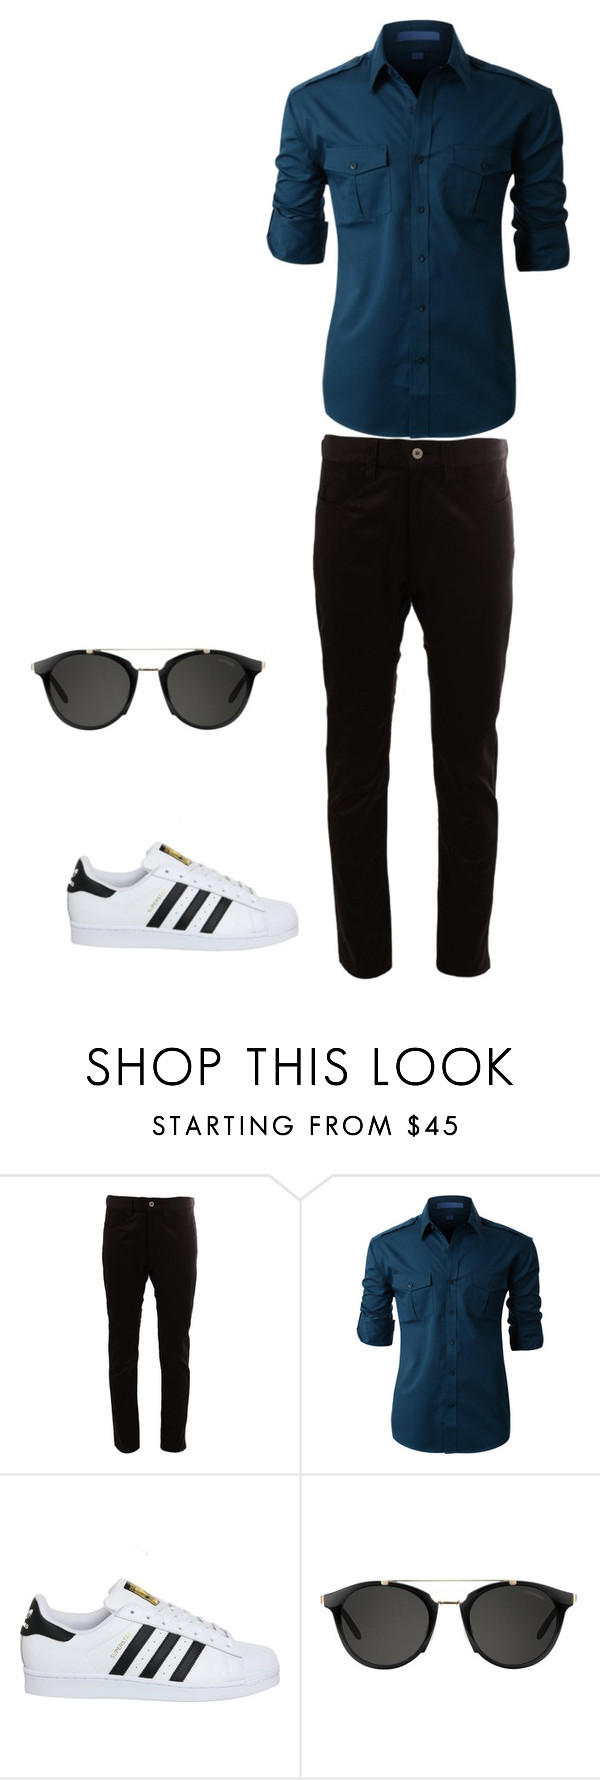 """""""Something Different: Cute but Simple"""" by lizyg1572 ❤ liked on Polyvore featuring Junya Watanabe Comme des Garçons, LE3NO, adidas, Carrera, men's fashion and menswear"""